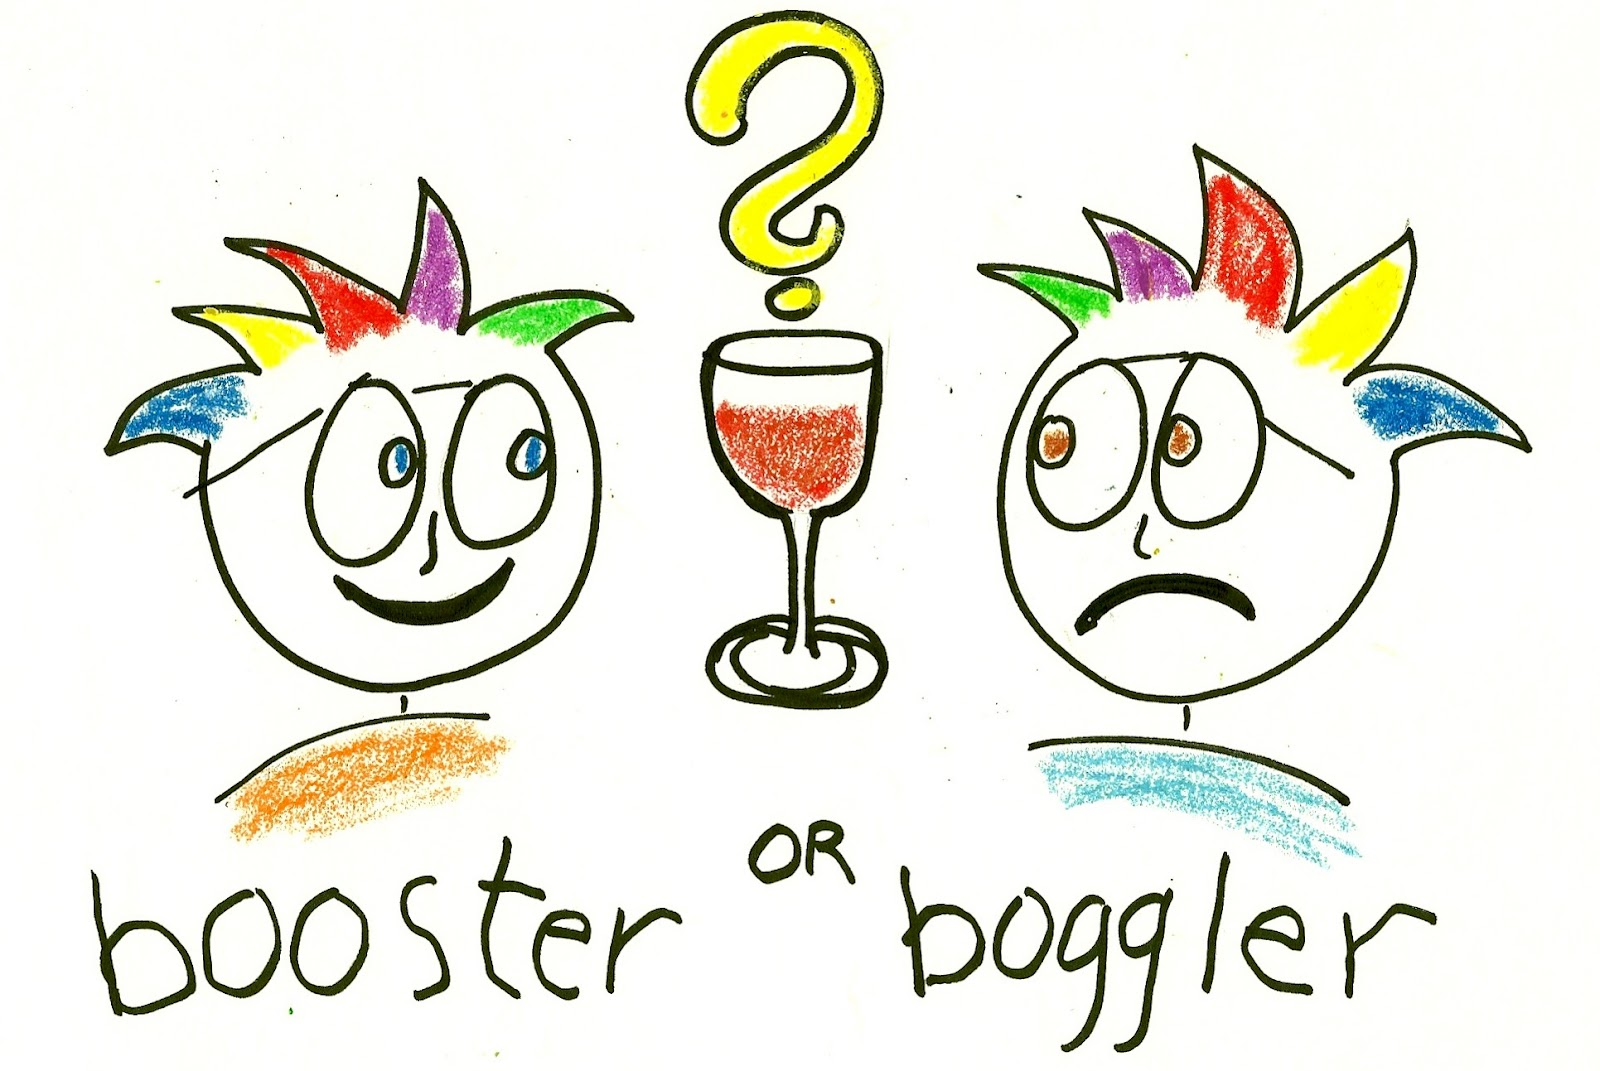 Hard Brain Does Alcohol Boost Or Boggle Your Brain